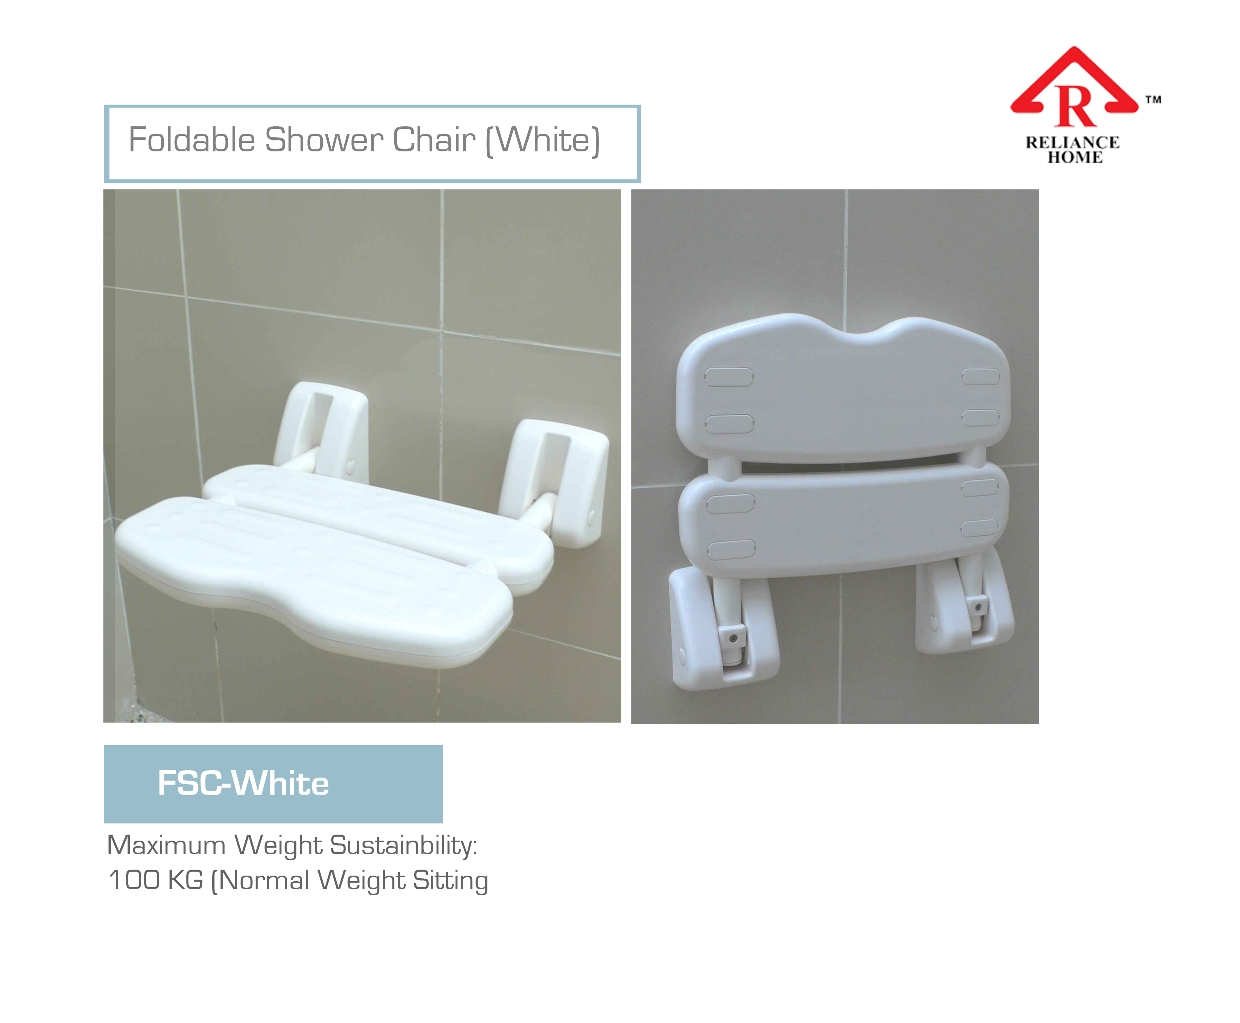 And Bath Benches To Built For Those Who Find It Difficult Or Impossible Stand Long Enough Shower Seats Are Designed Be